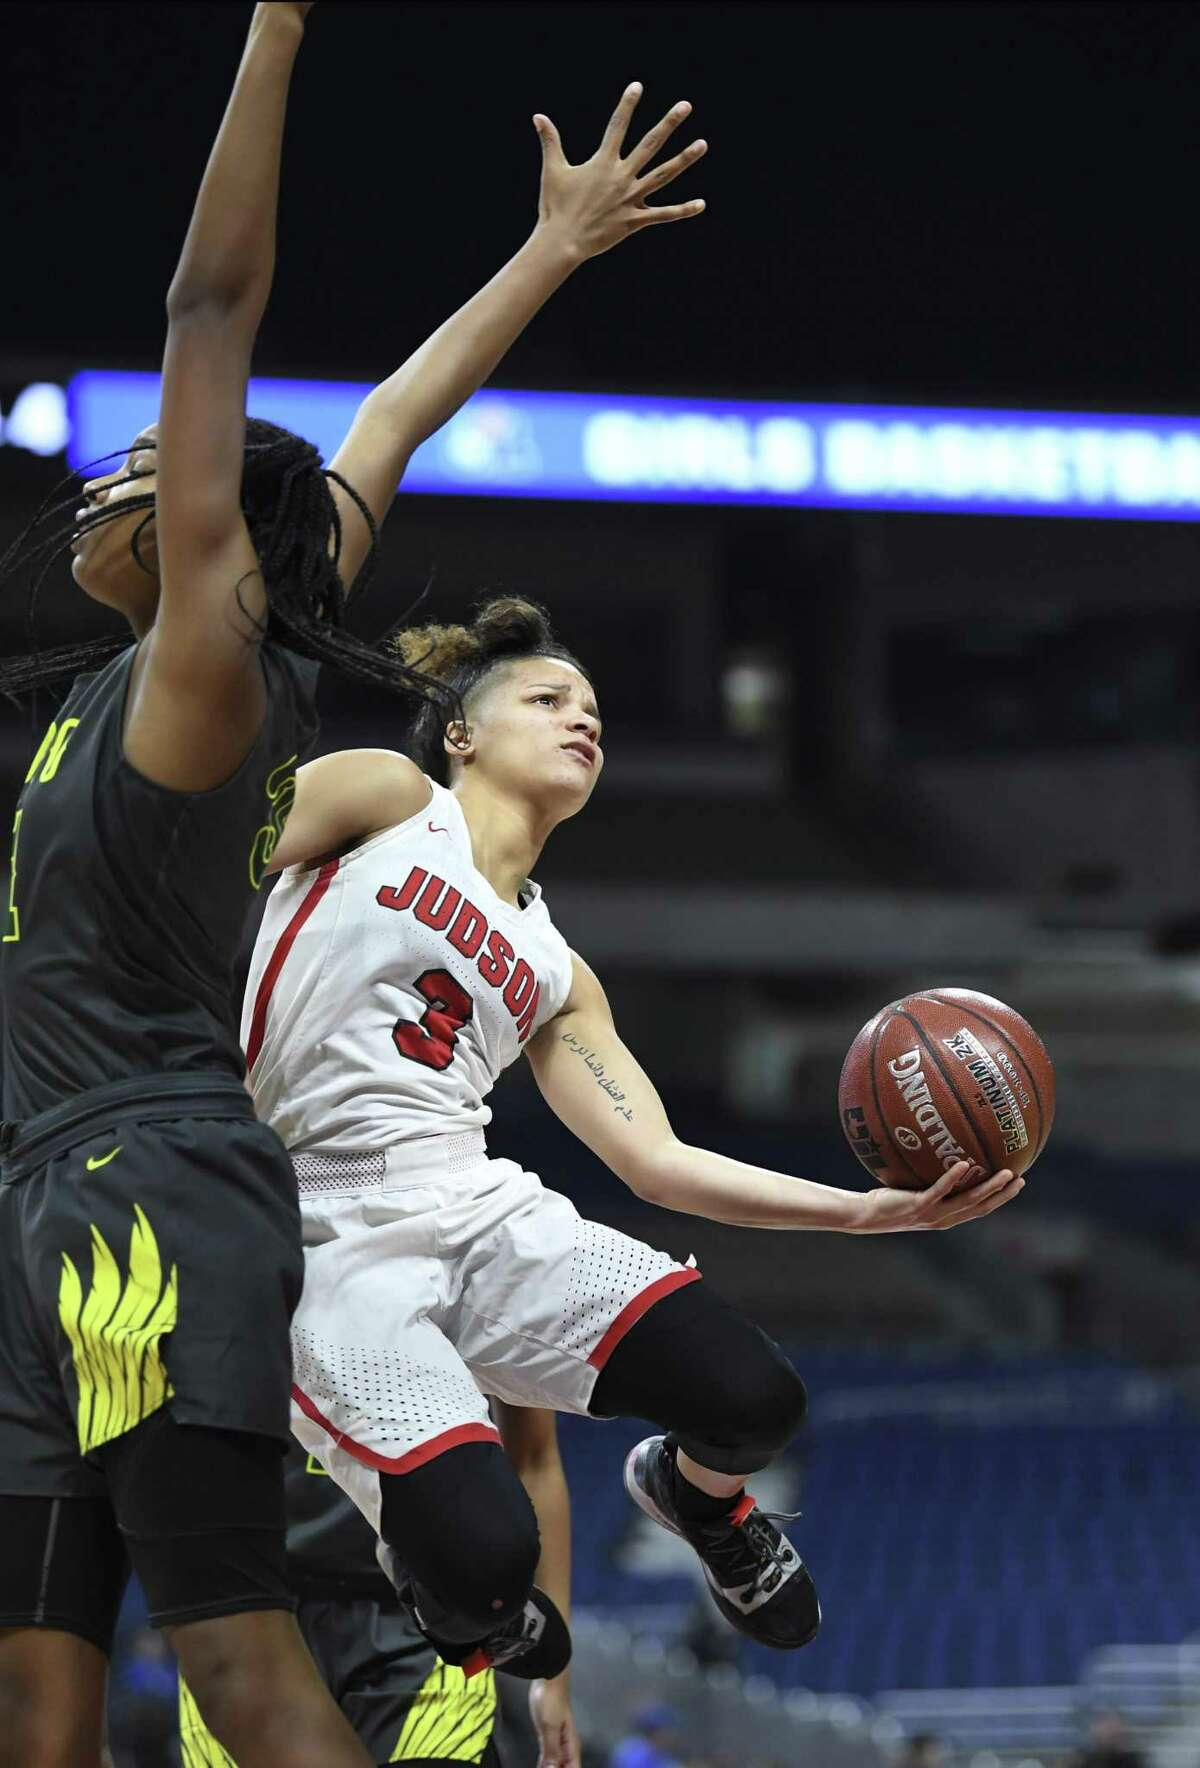 Judson's Corina Carter (3) penetrates and scores as Sa'Myah Smith of DeSoto defends during the Class 6A girls state championship game in the Alamodome on Saturday, March 2, 2019.